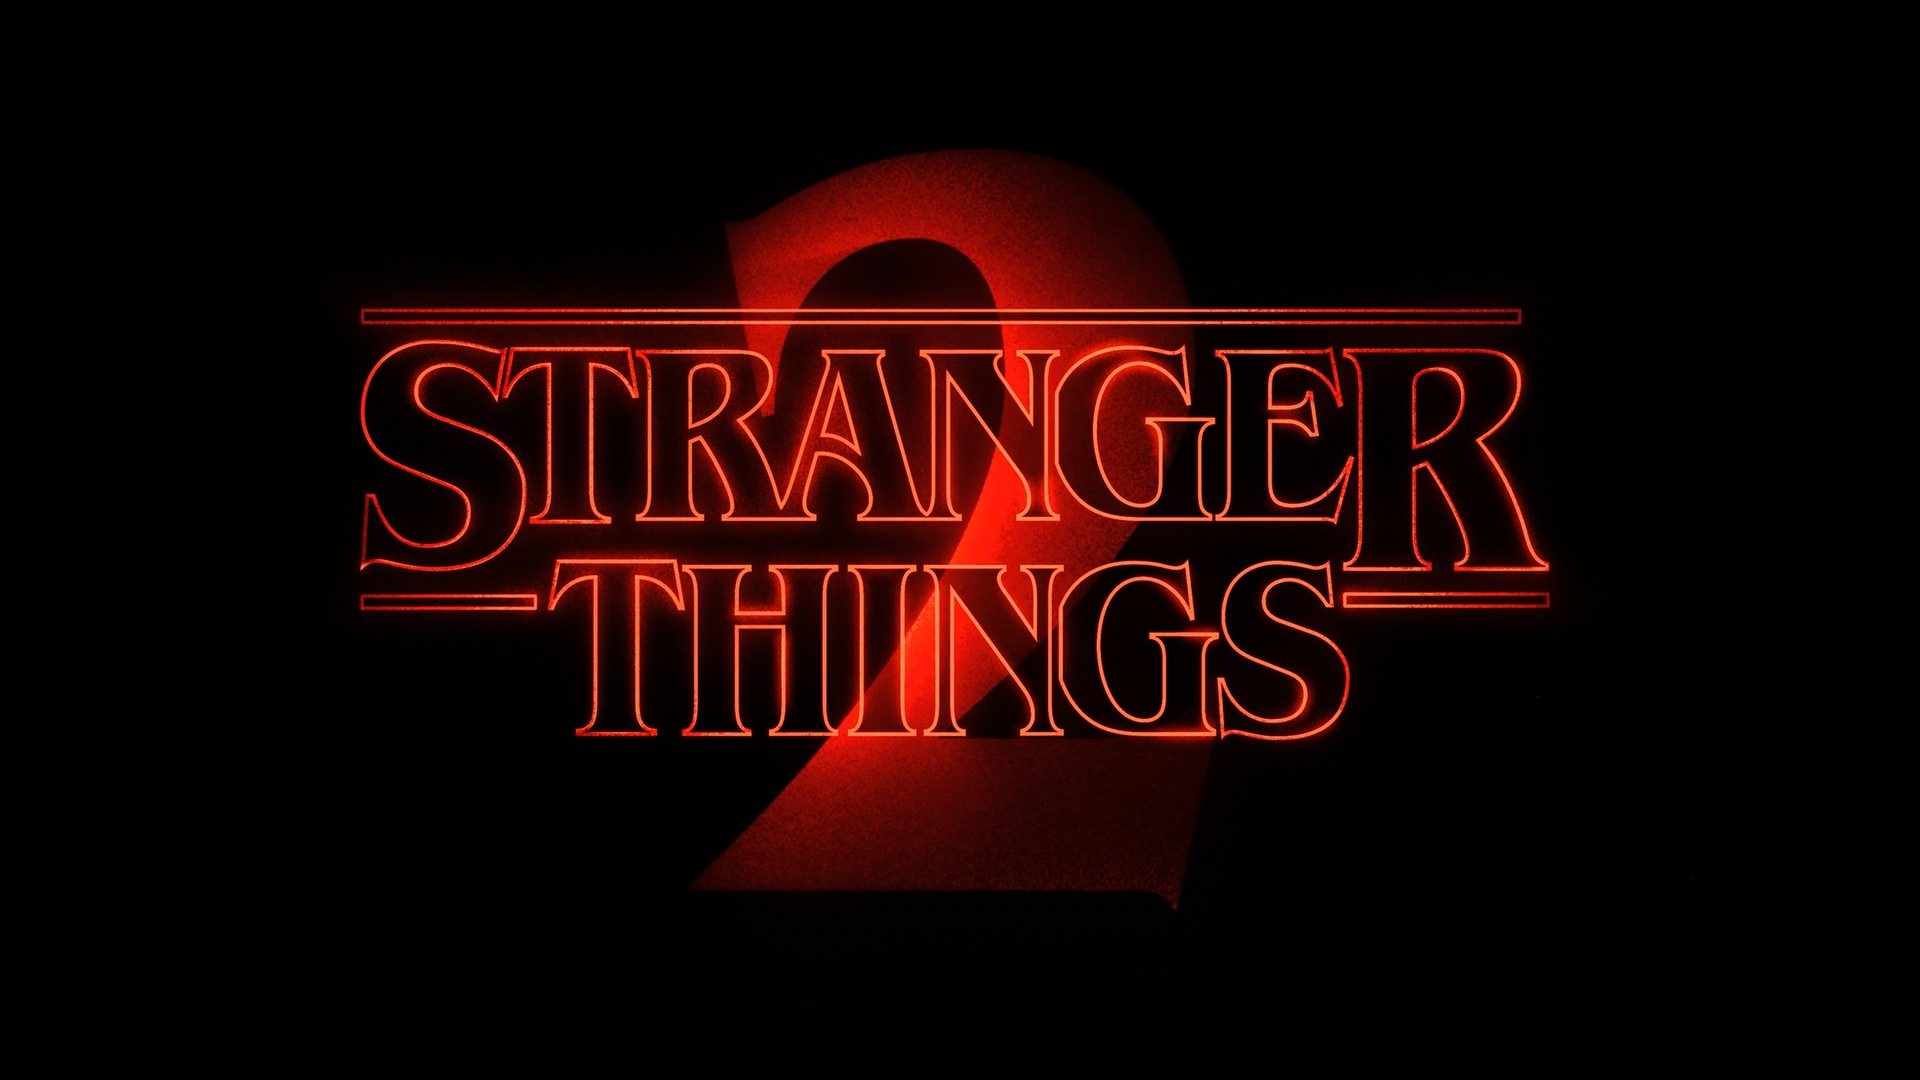 Stranger Things (2016) | Film and Television Wikia ...